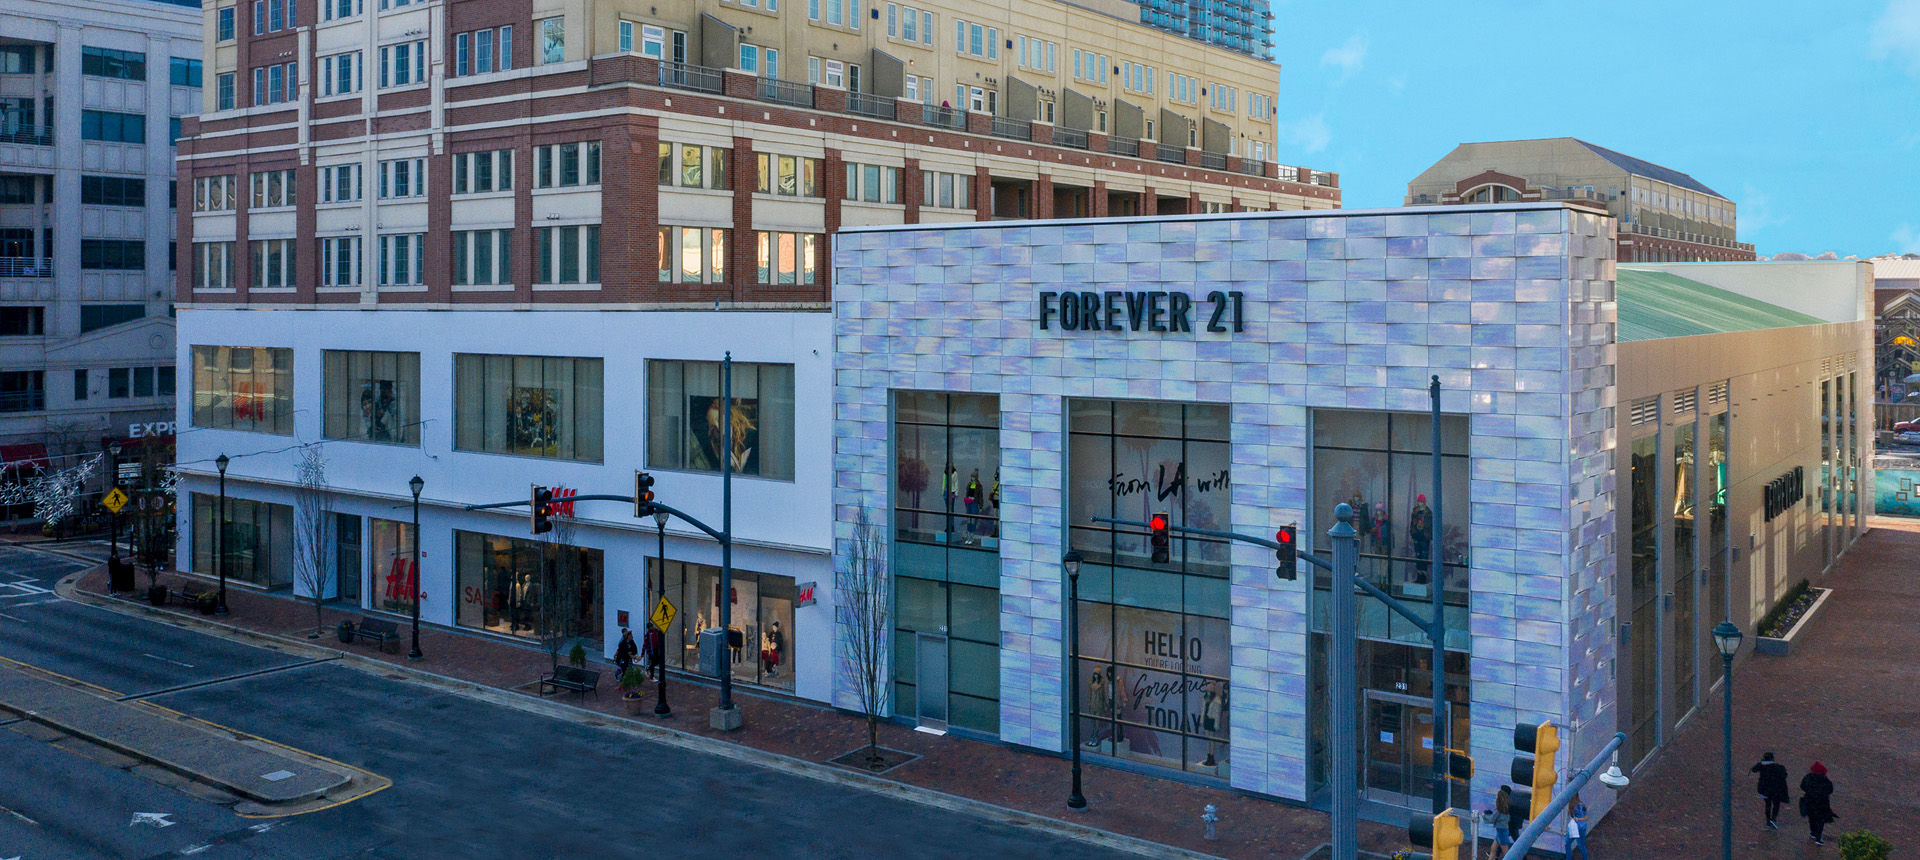 H&M, Forever 21, and Bowlero at Atlantic Station - H&M Facade